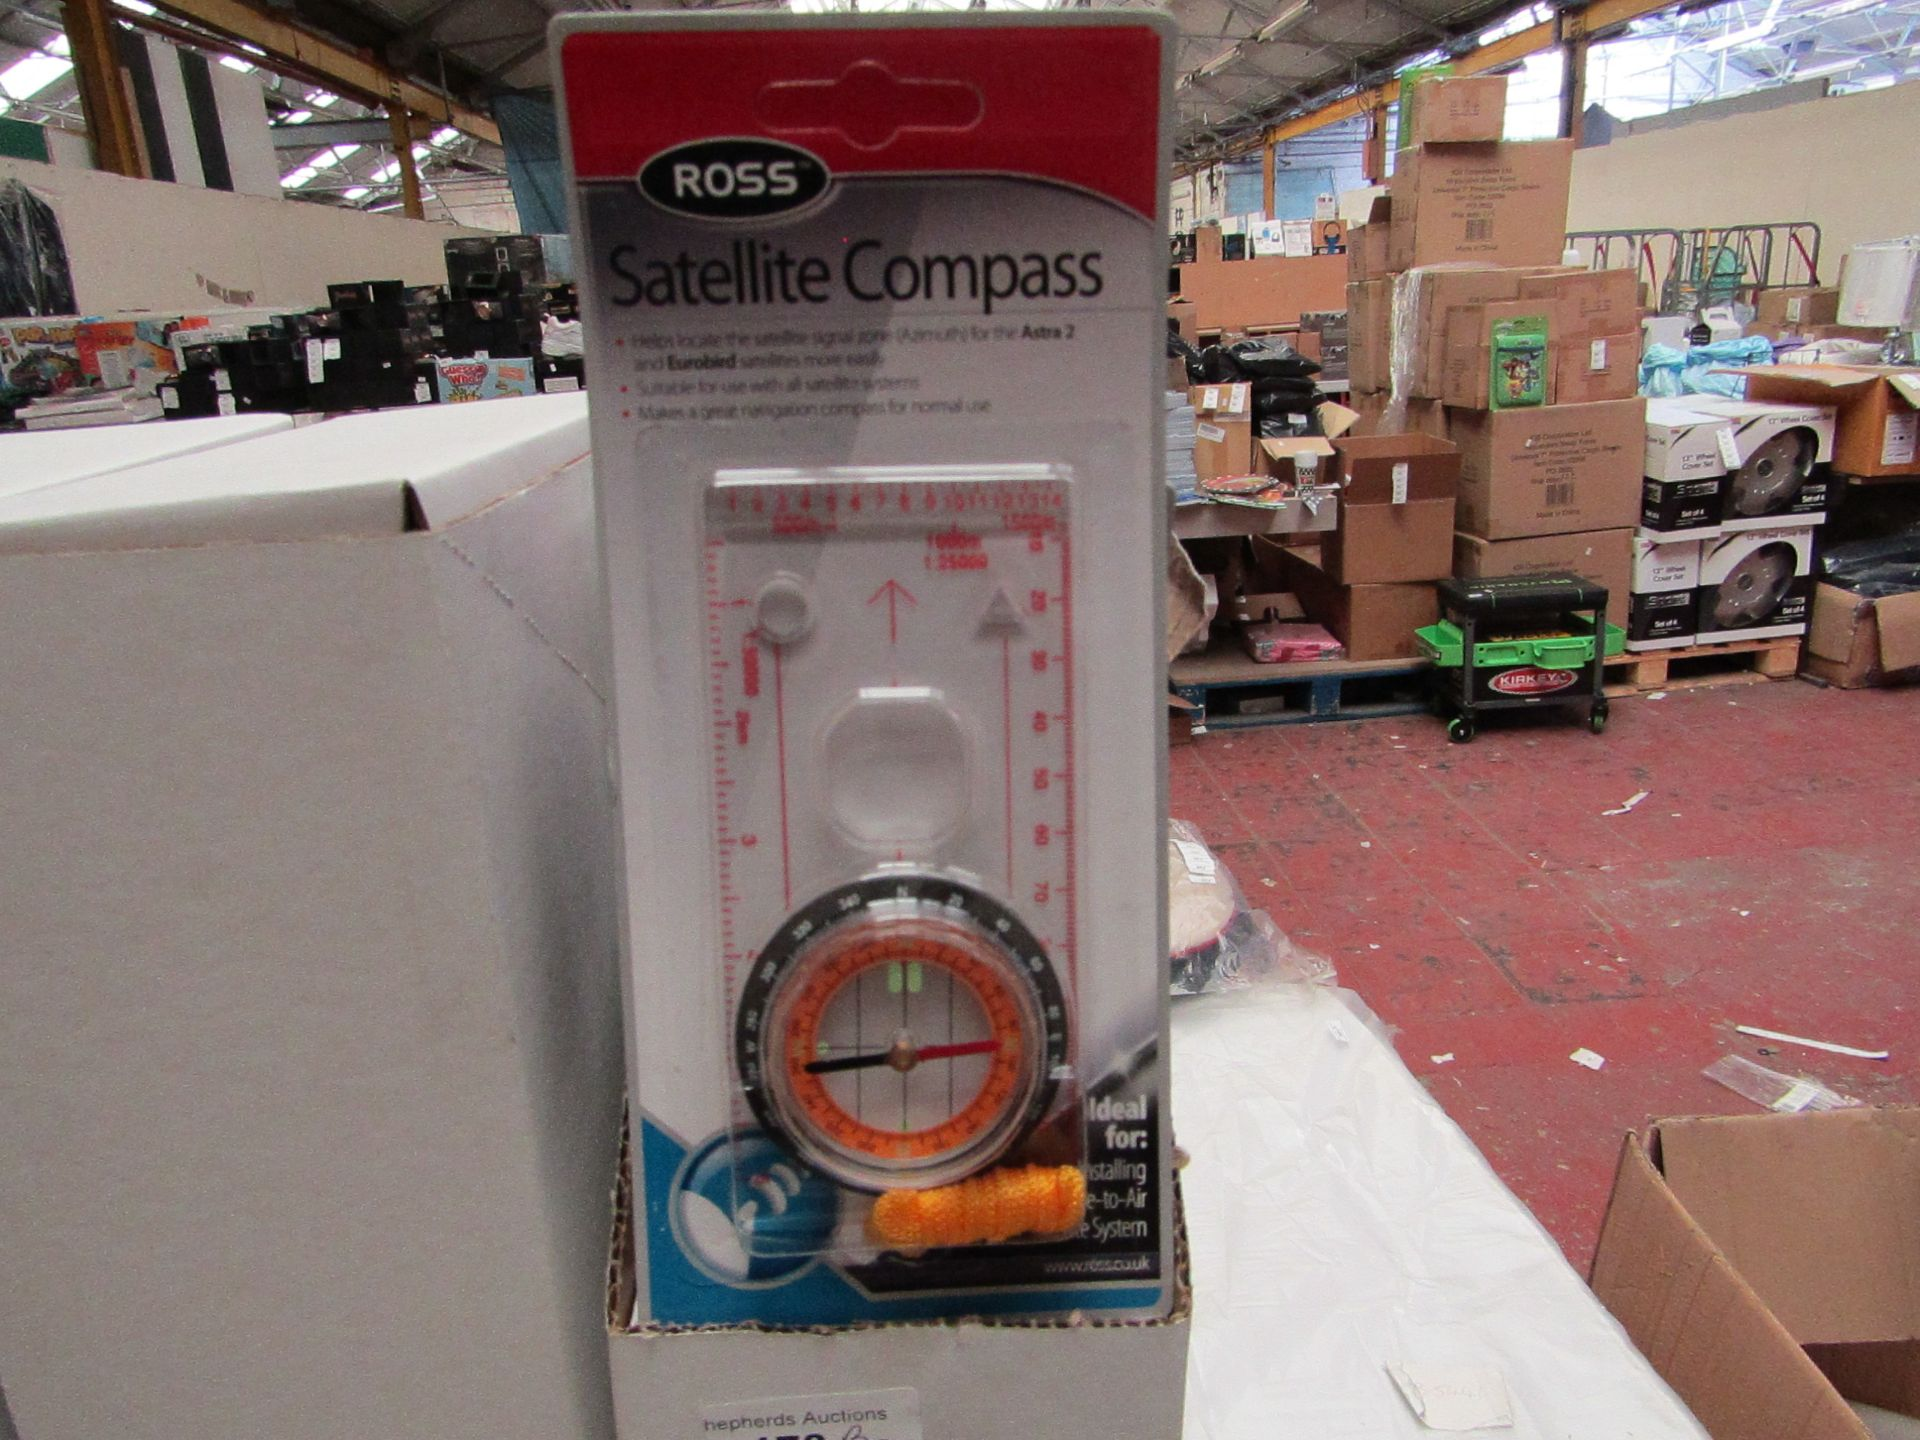 Lot 180 - Box of 10 Ross Satellite Compass'. Unused & Boxed